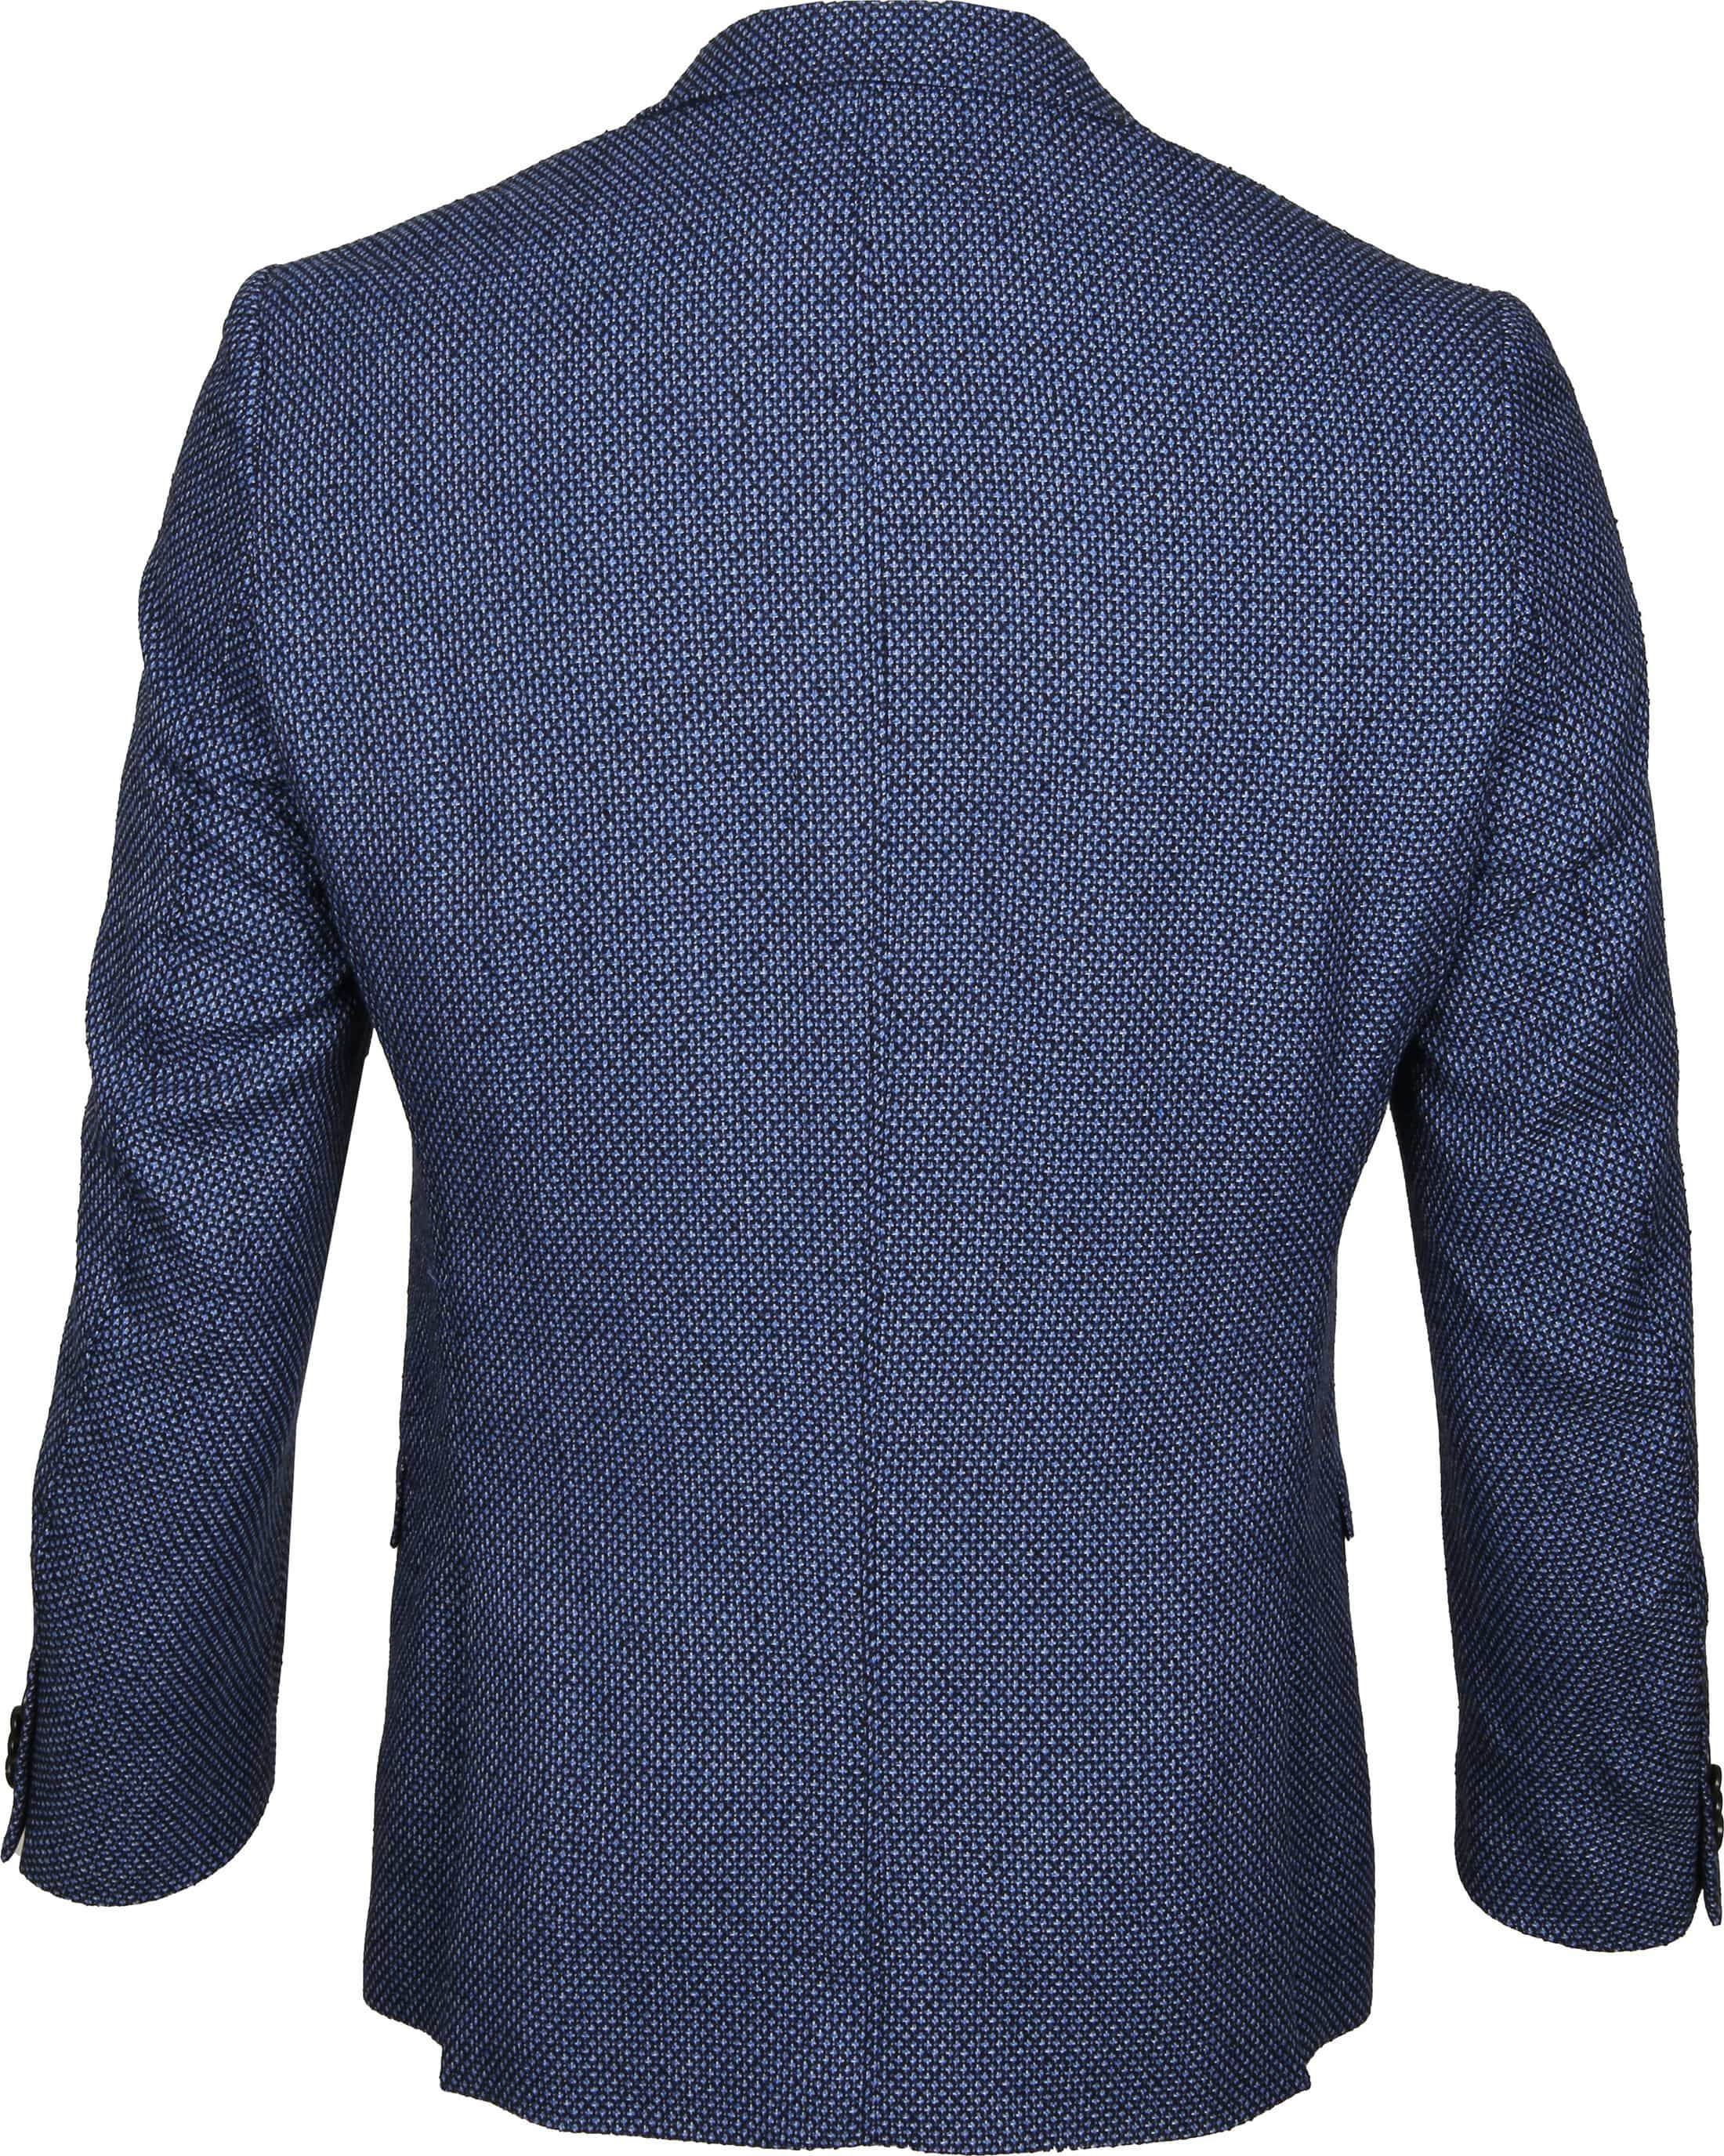 Suitable Blazer Art Dessin Navy foto 4